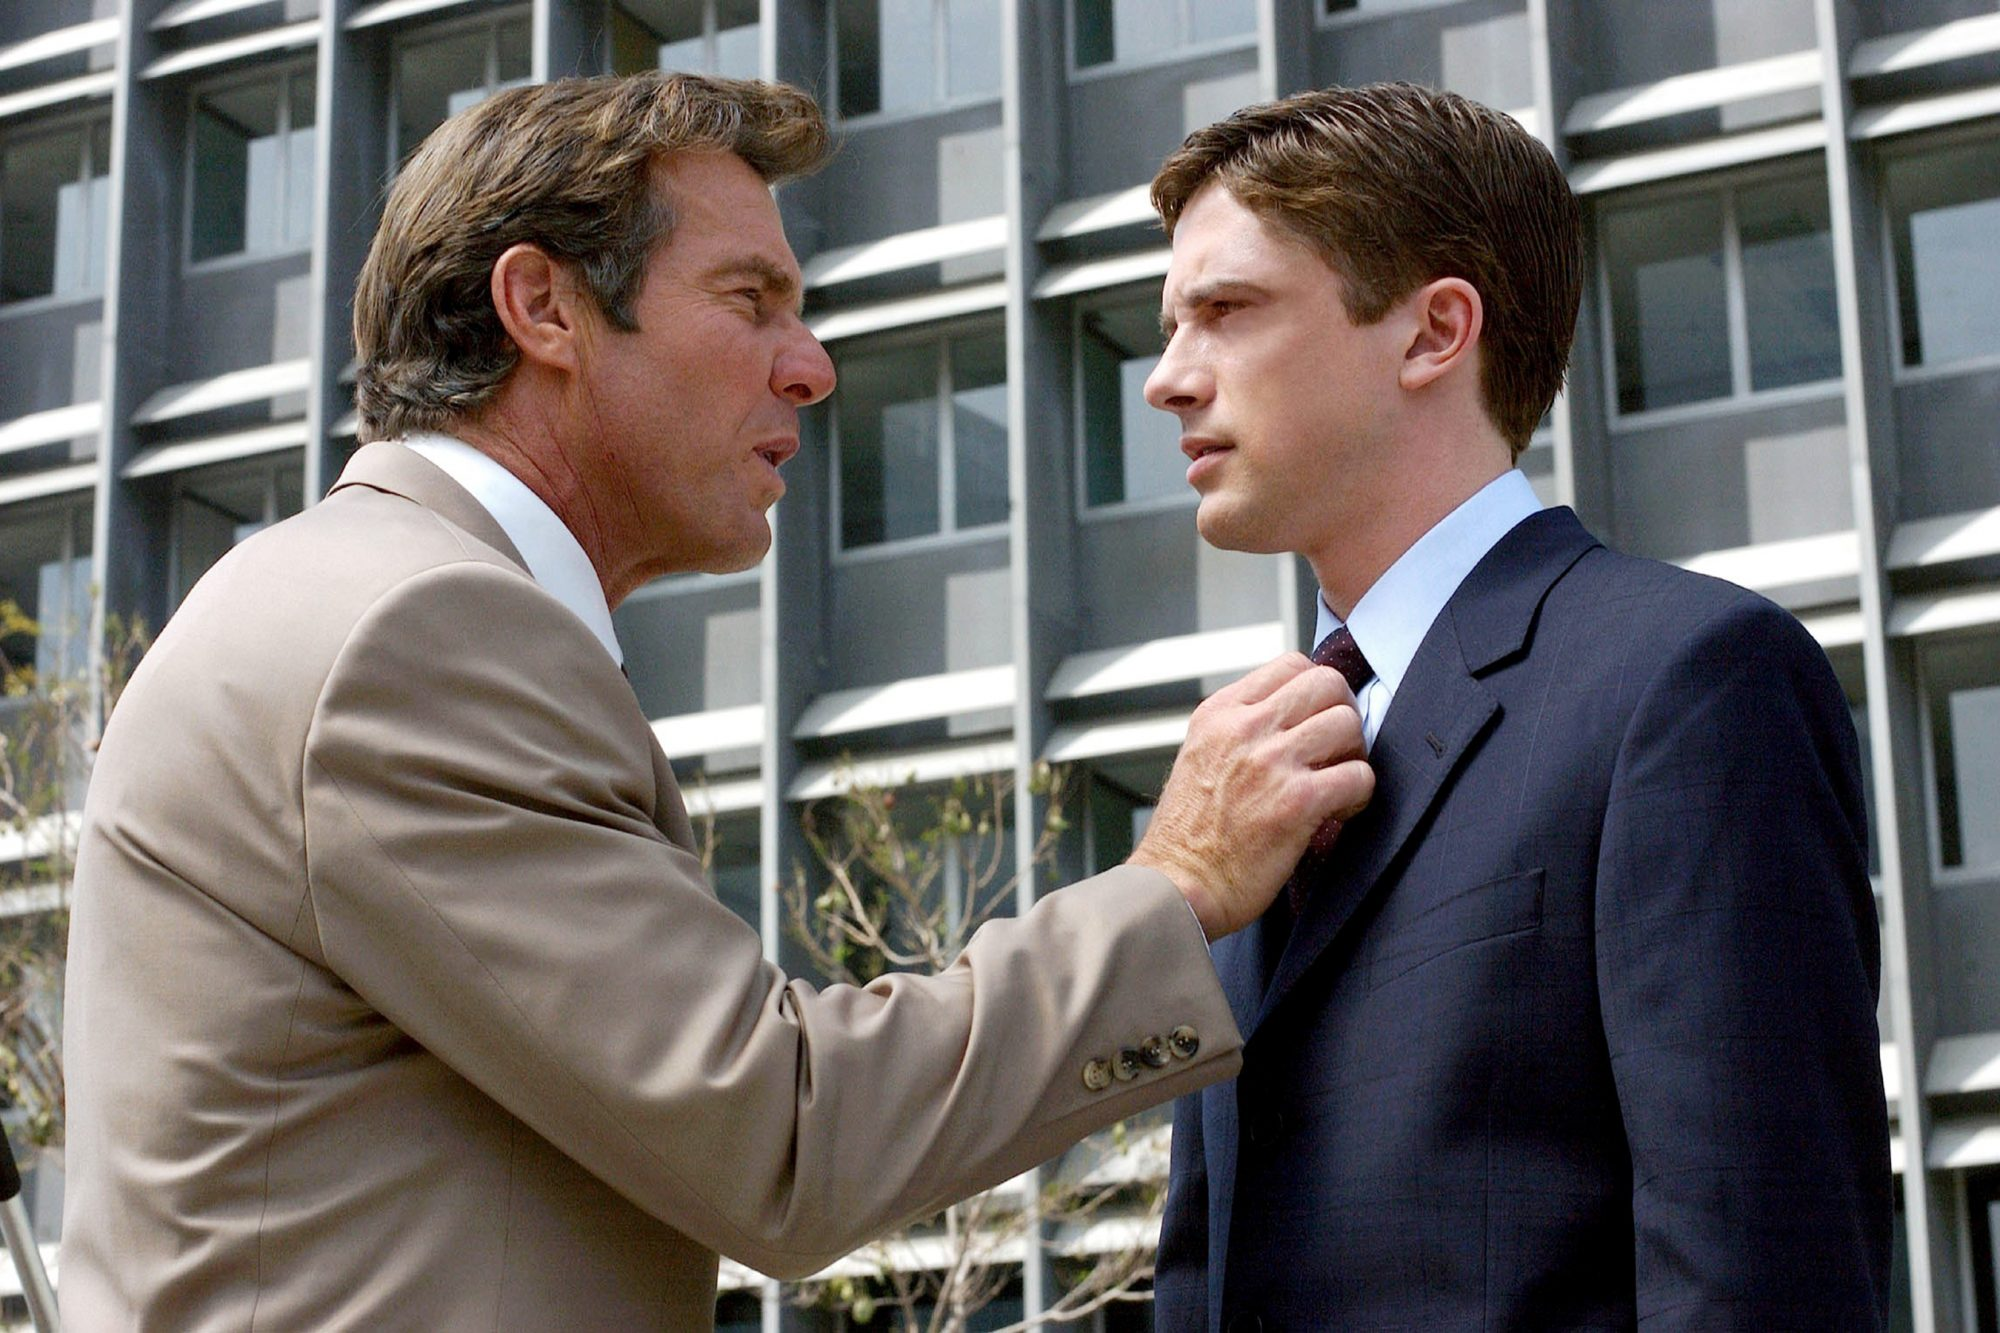 IN GOOD COMPANY, Dennis Quaid, Topher Grace, 2004, (c) Universal/courtesy Everett Collection